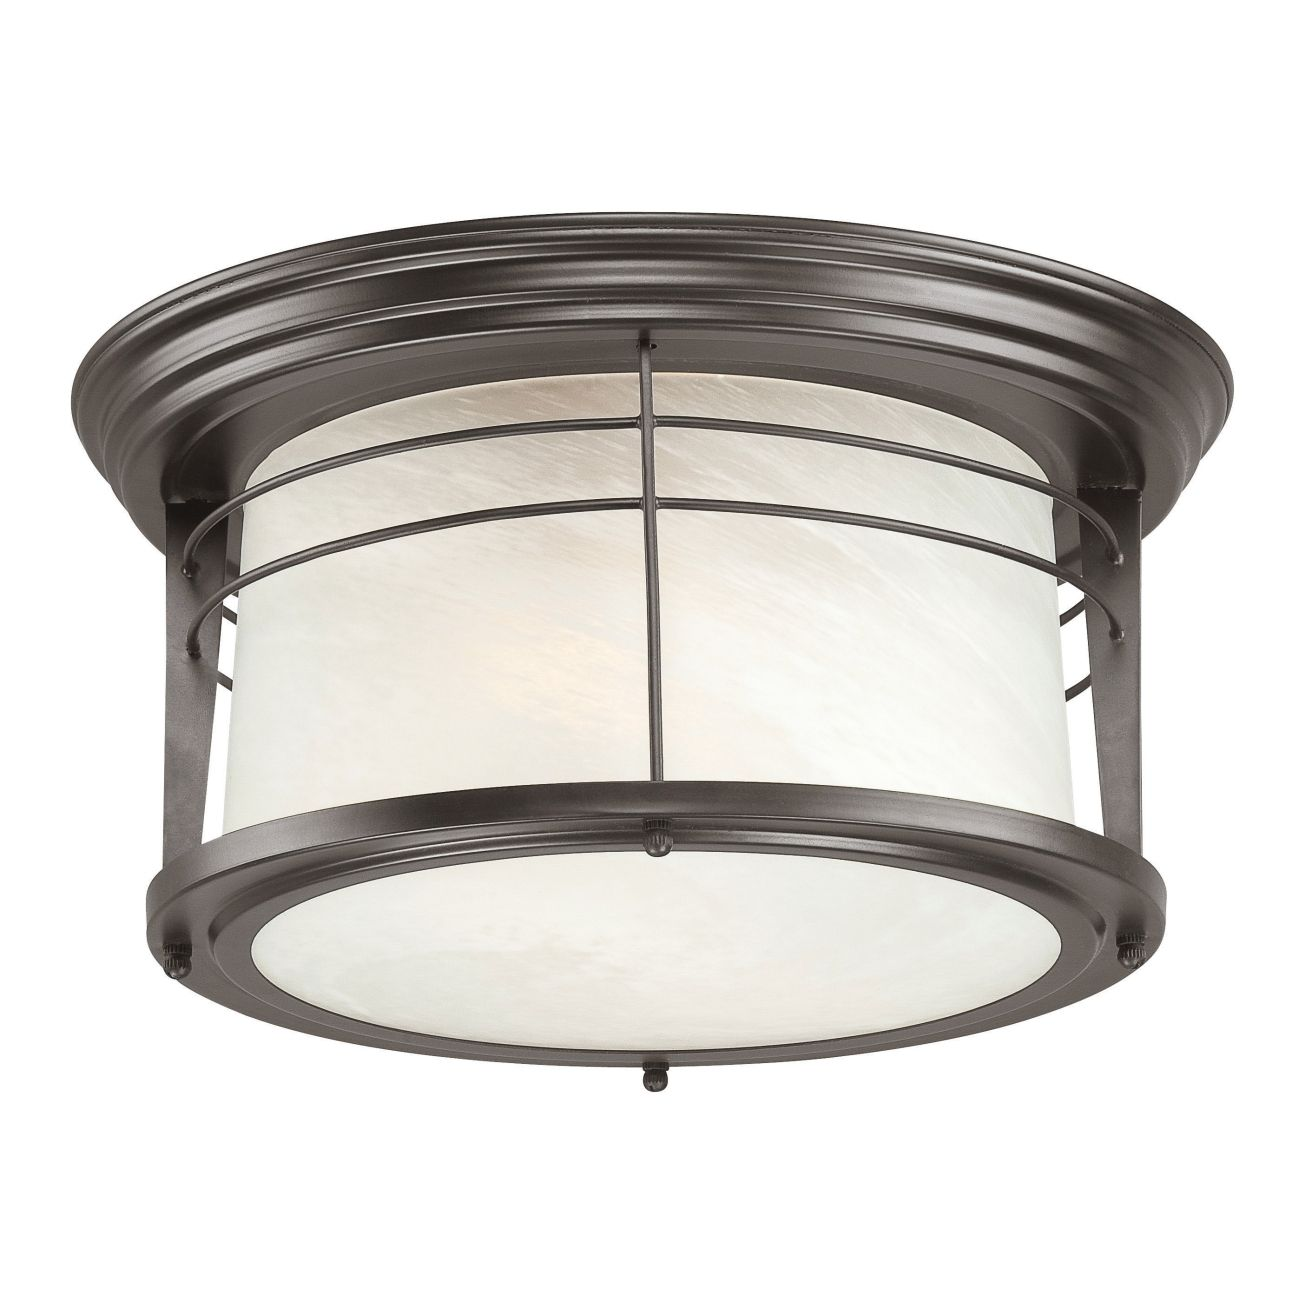 Westinghouse Weathered Bronze Interior Flush Ceiling Light Fixture 6674648 Indoor Wall Fixtures Porch Light Fixtures Outdoor Ceiling Lights Porch Lighting